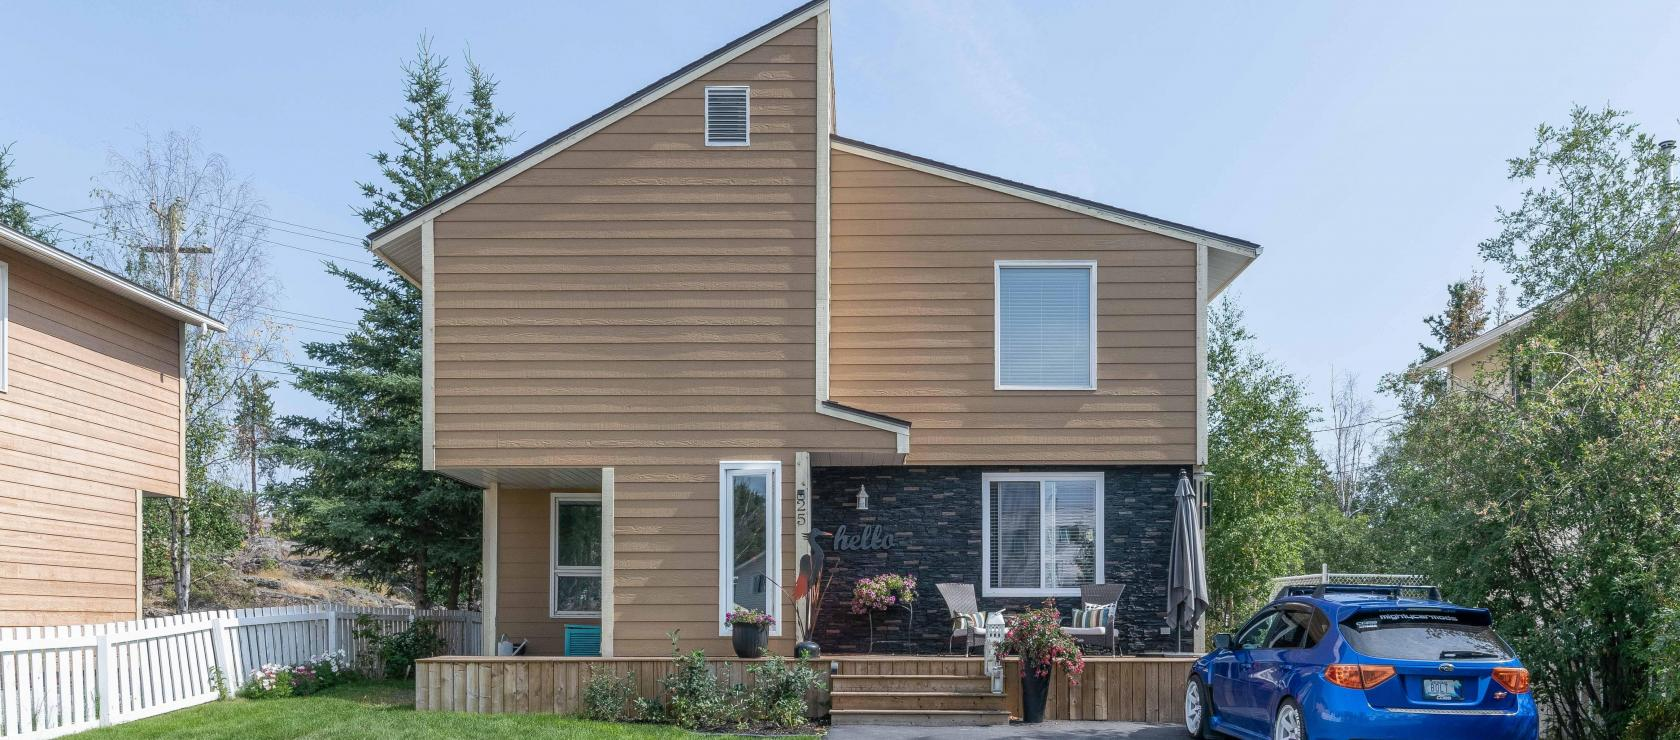 25 Taylor Road, Forrest Park, Yellowknife 2